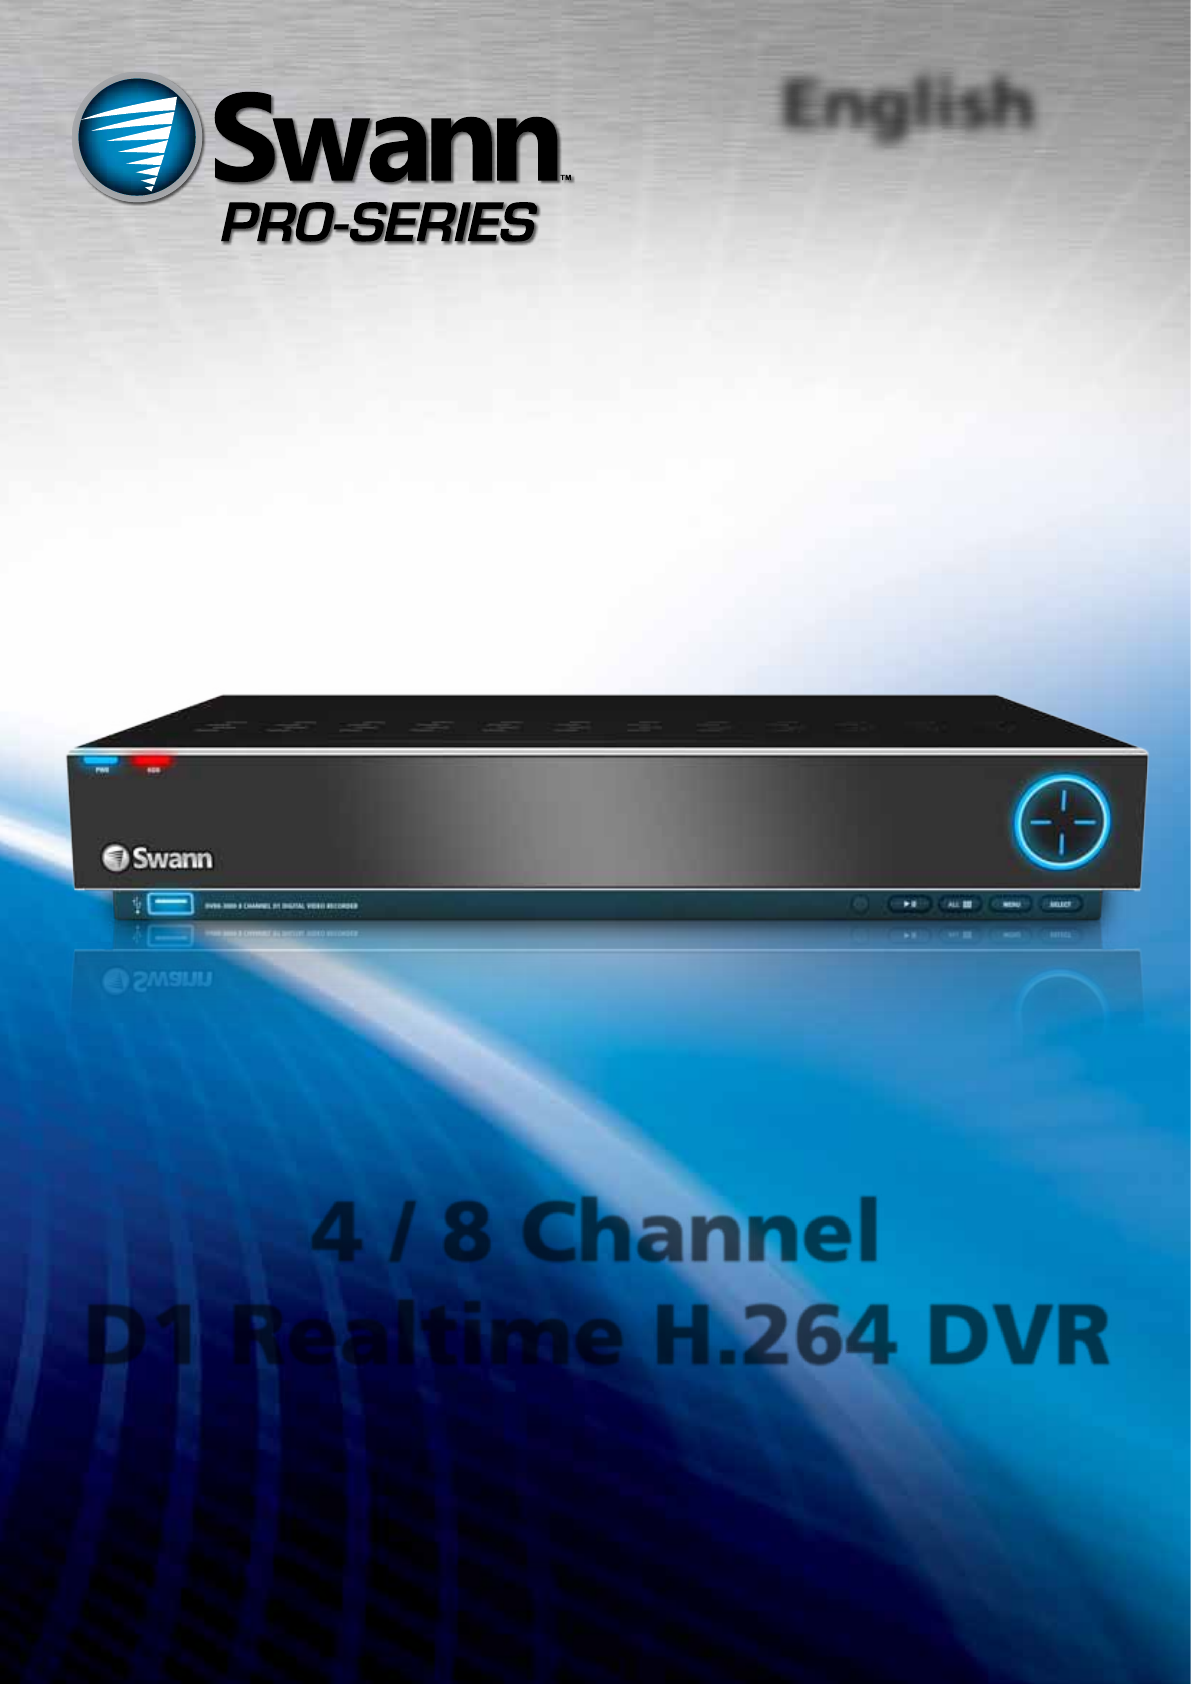 Swann DVR8-3000 manual